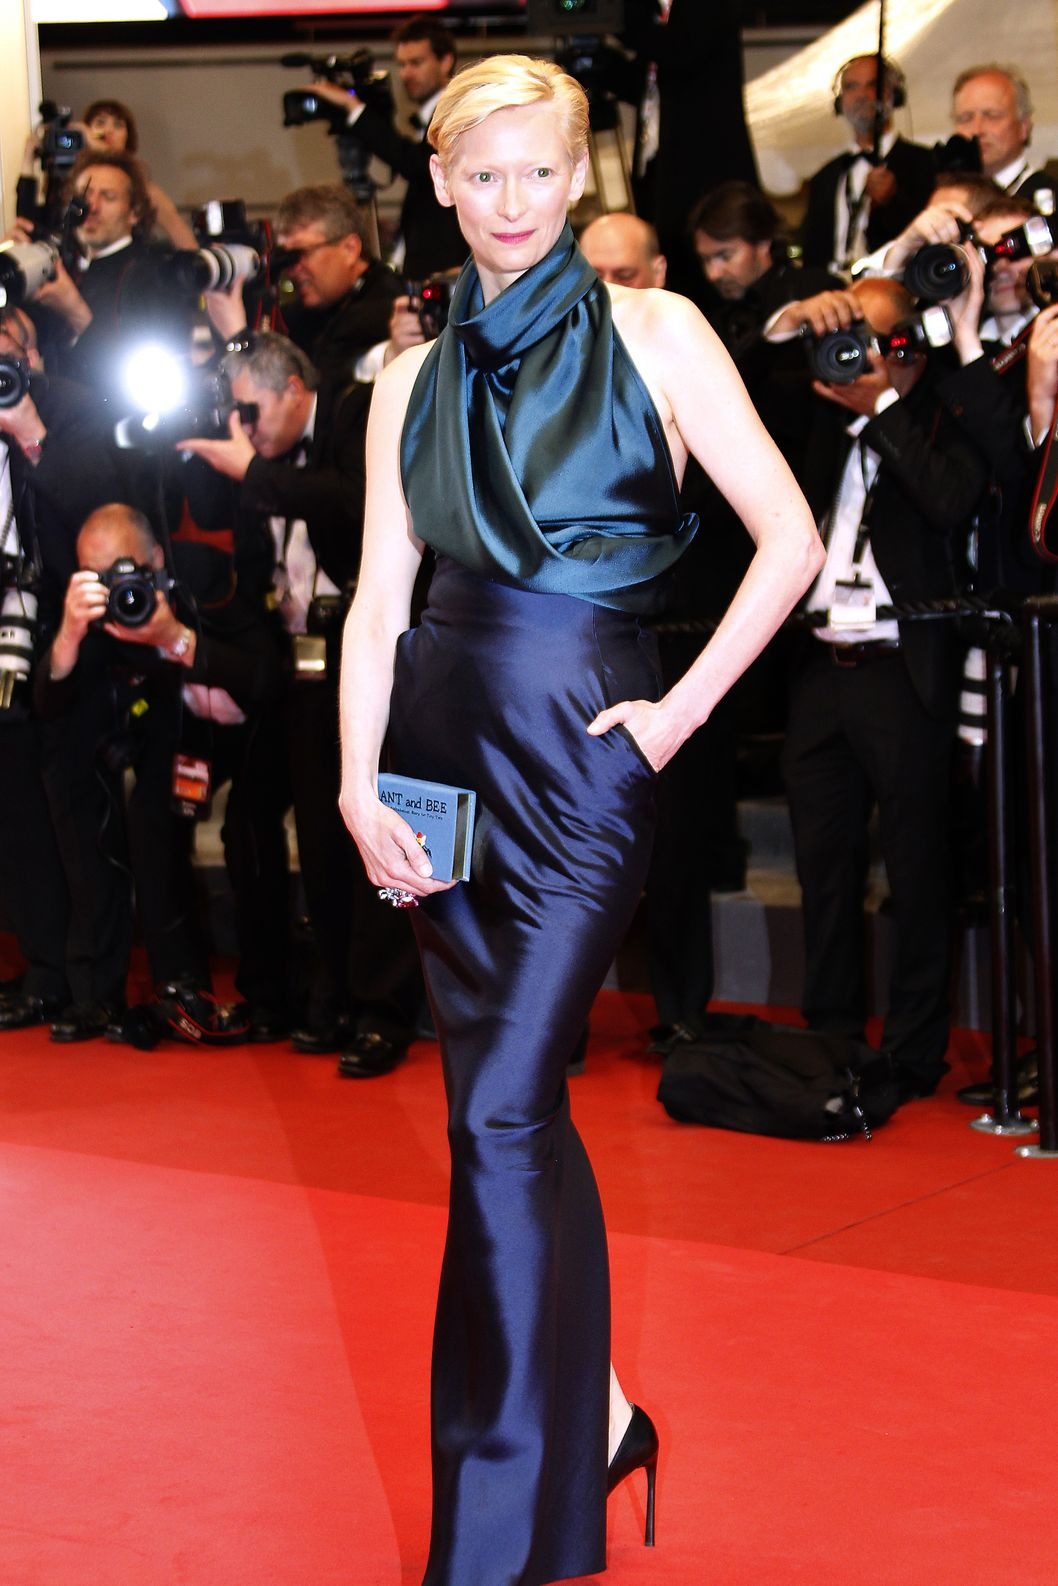 "British actress Tilda Swinton poses on the red carpet before the screening of ""We Need to Talk About Kevin"" presented in competition at the 64th Cannes Film Festival on May 12, 2011 in Cannes.  AFP PHOTO / FRANCOIS GUILLOT (Photo credit should read FRANCOIS GUILLOT/AFP/Getty Images)"